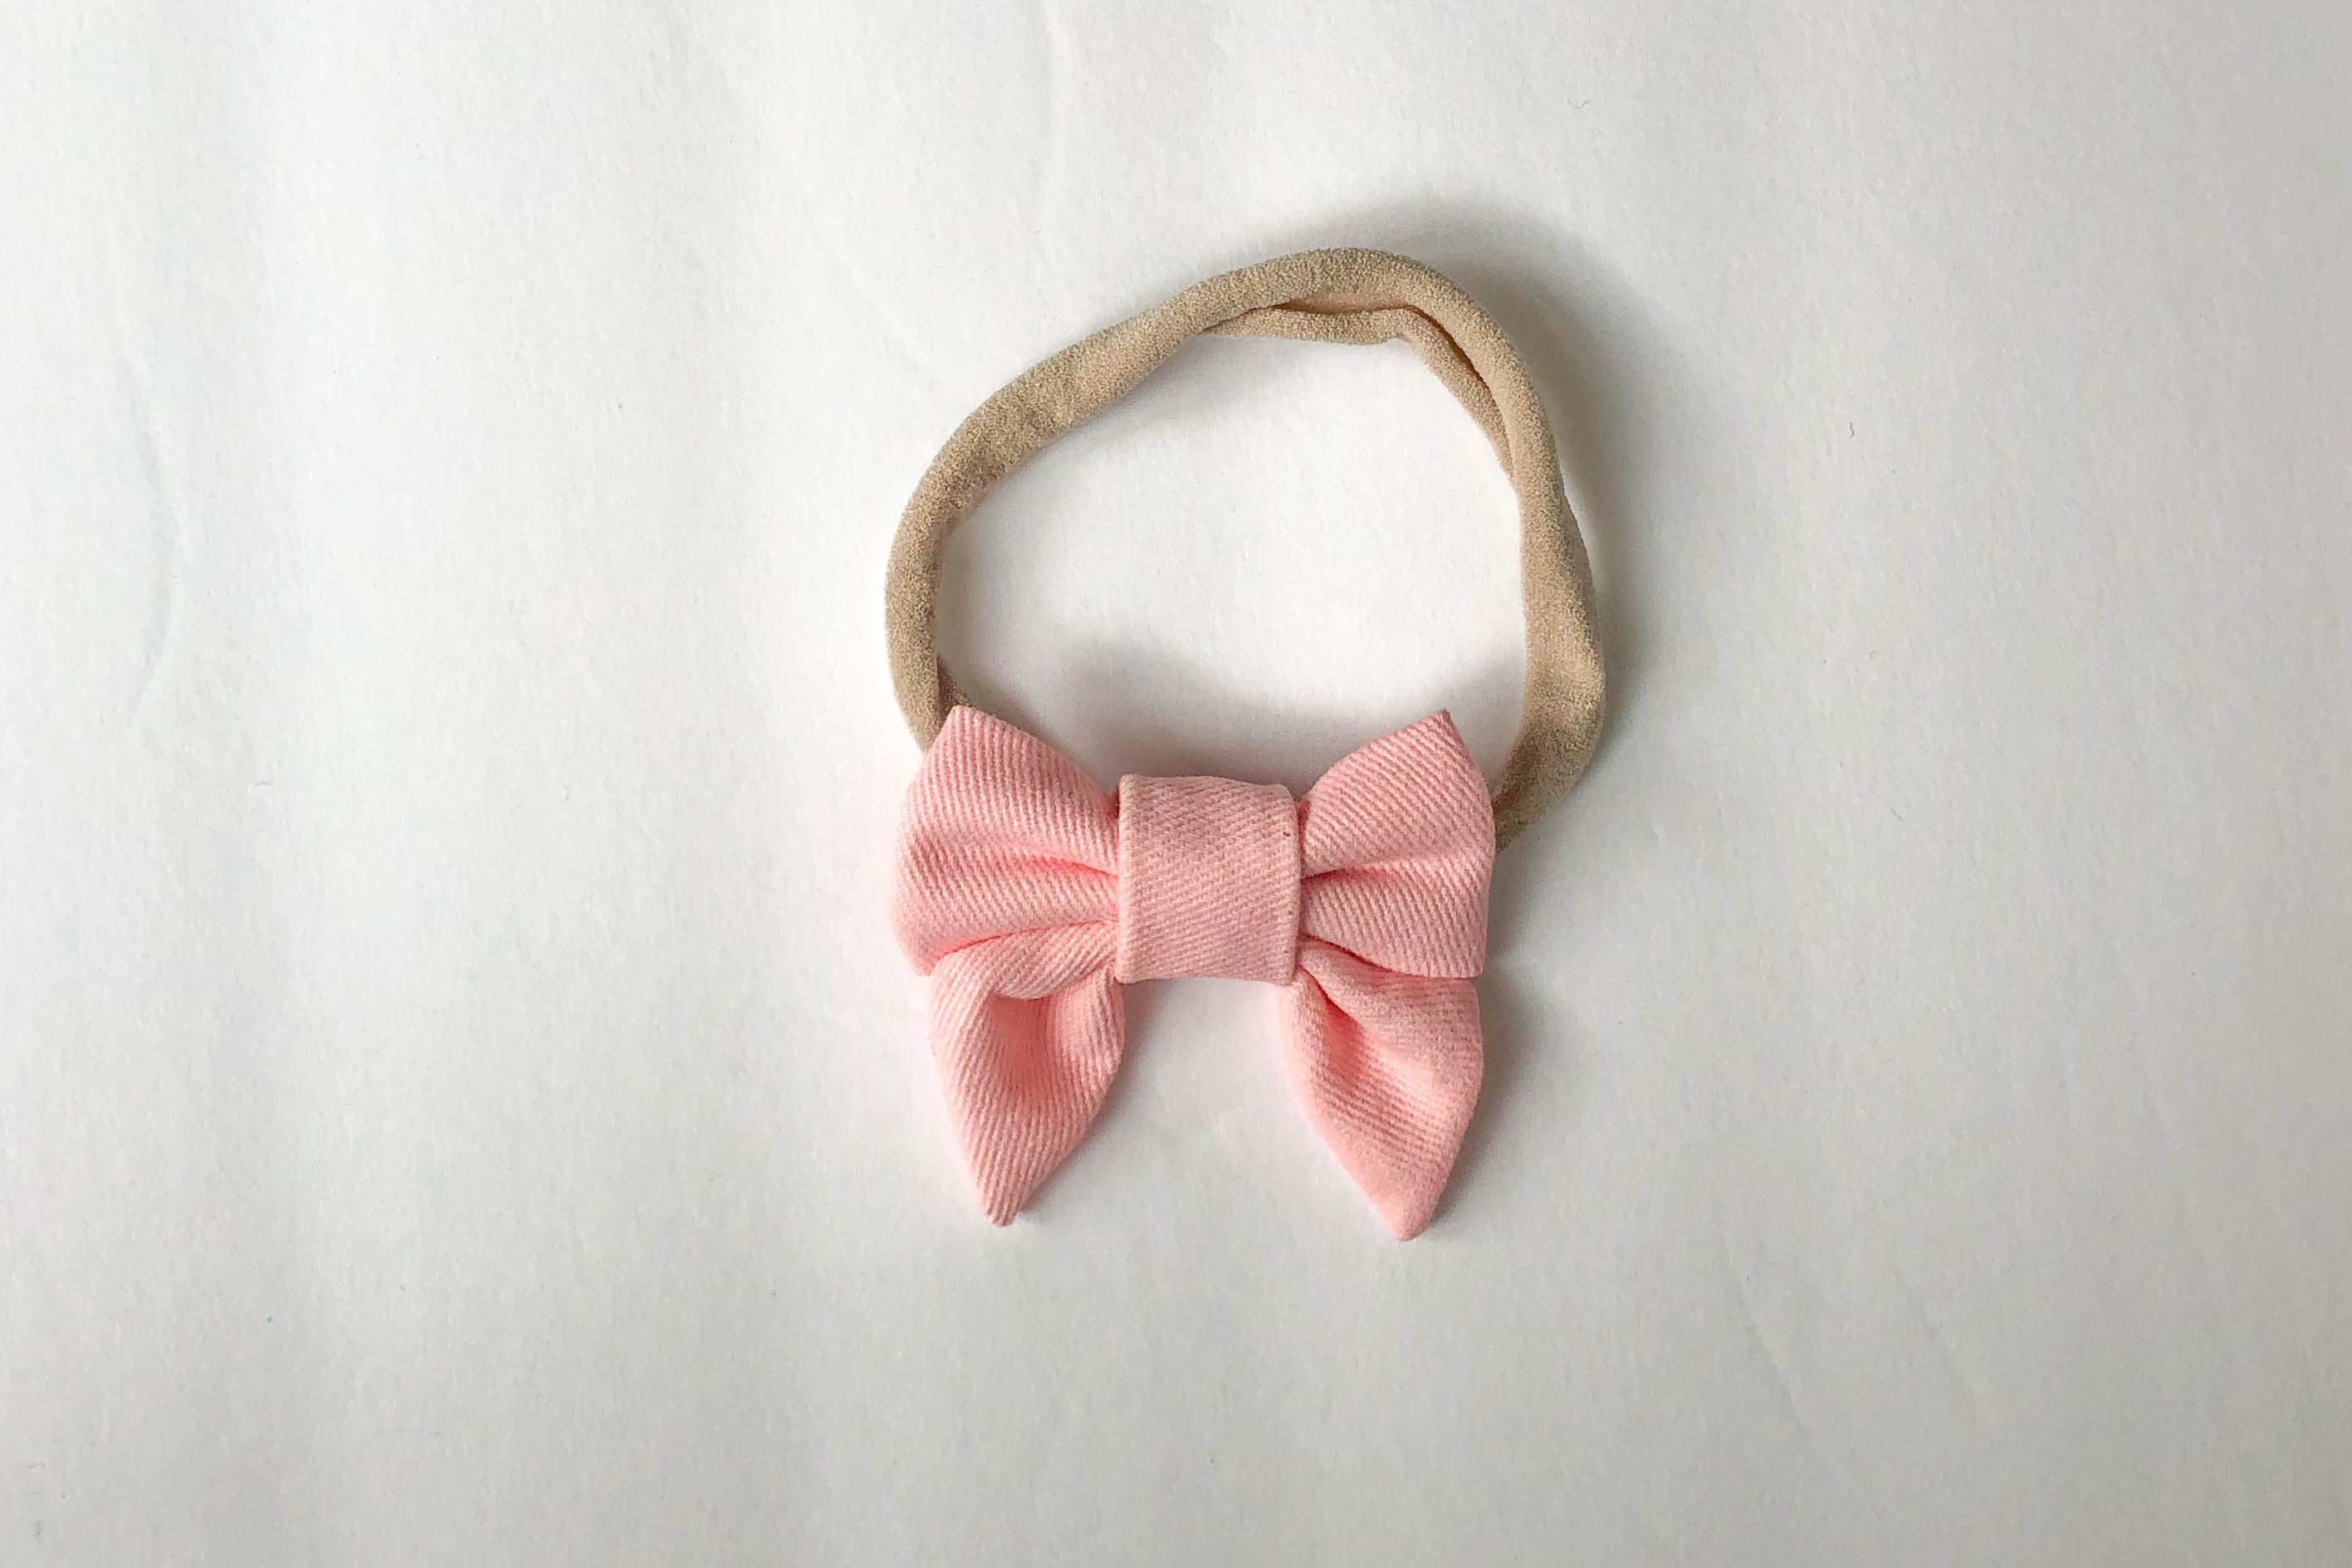 Pink baby hair bow, chunky sailor bow, matching tie and baby hair bow, nylon headband